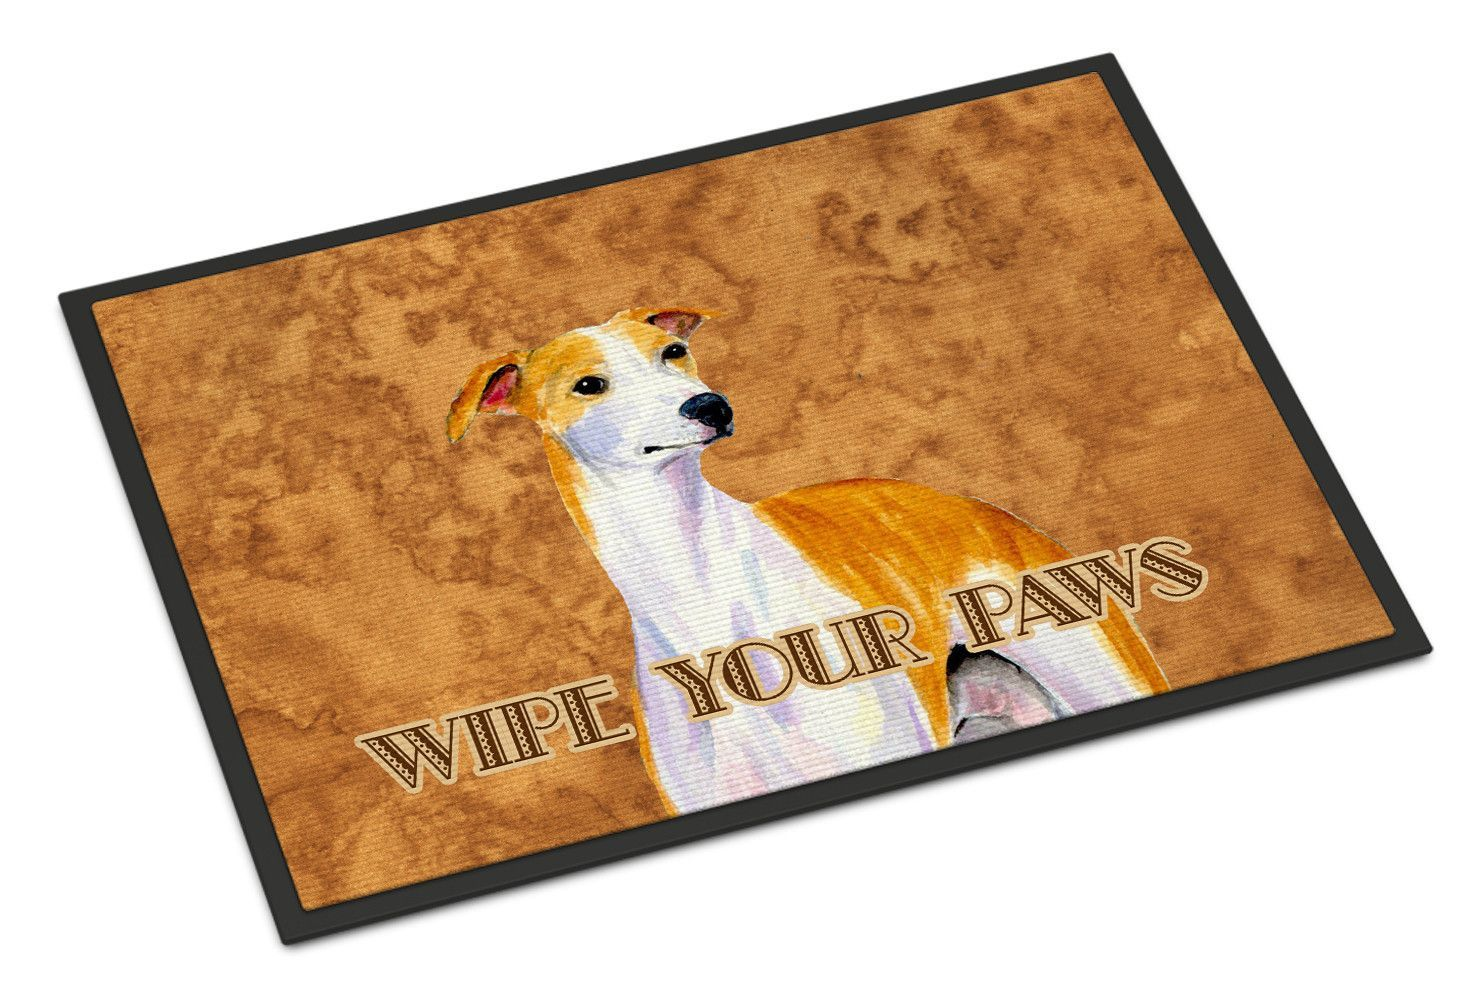 Whippet Wipe your Paws Indoor or Outdoor Mat 18x27 LH9449MAT